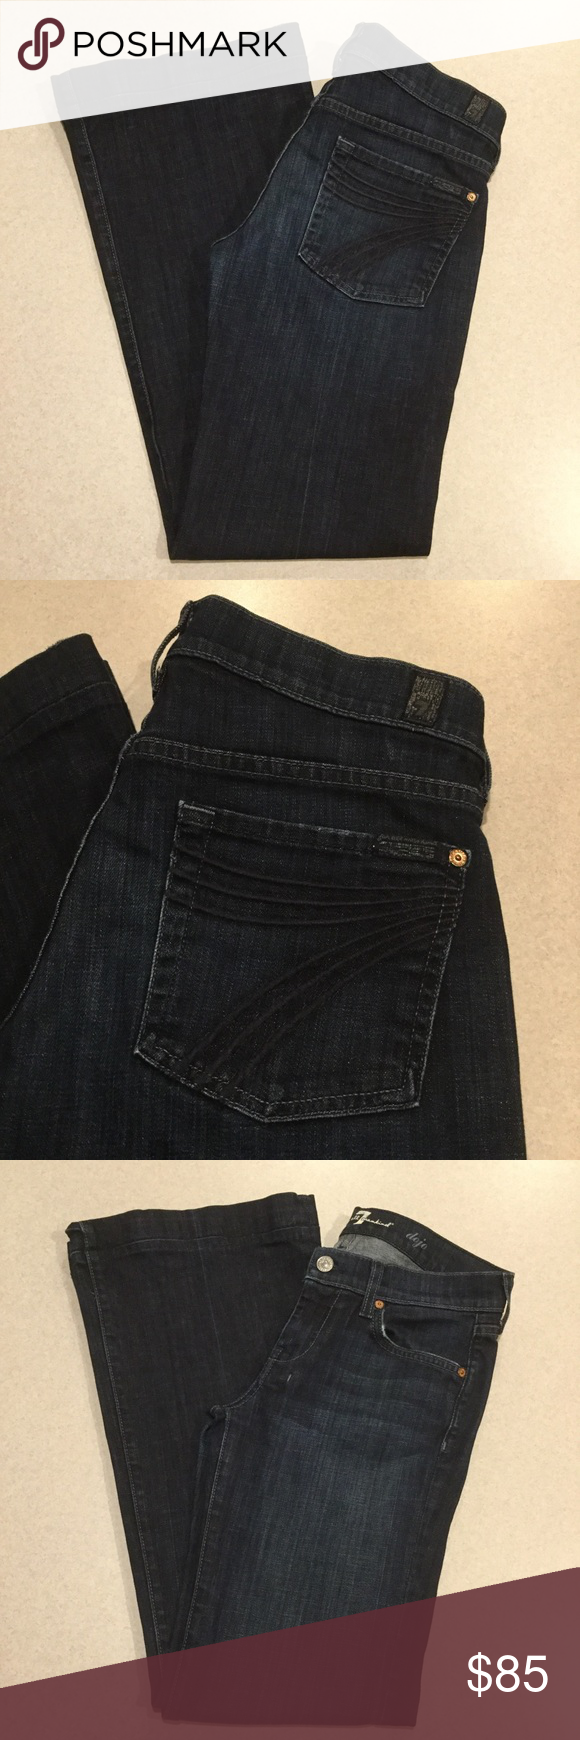 7 For All Mankind Jeans 27X31 Dojo New York Dark! ❗️PRICE ABSOLUTELY FIRM❗️ 7 for all mankind jeans Size 27 31 in professionally hemmed inseam The dojo in New York dark Famous blue stitched 7 back pockets Vibrant blue stretch denim with soft fading Perfect preowned condition, no flaws Retailed for $198.00 My dojos sell fast so don't wait on these!  All of my items come from a smoke free, pet free home and are authenticity guaranteed! Please ask any questions. 32 7 For All Mankind Jeans Flare…